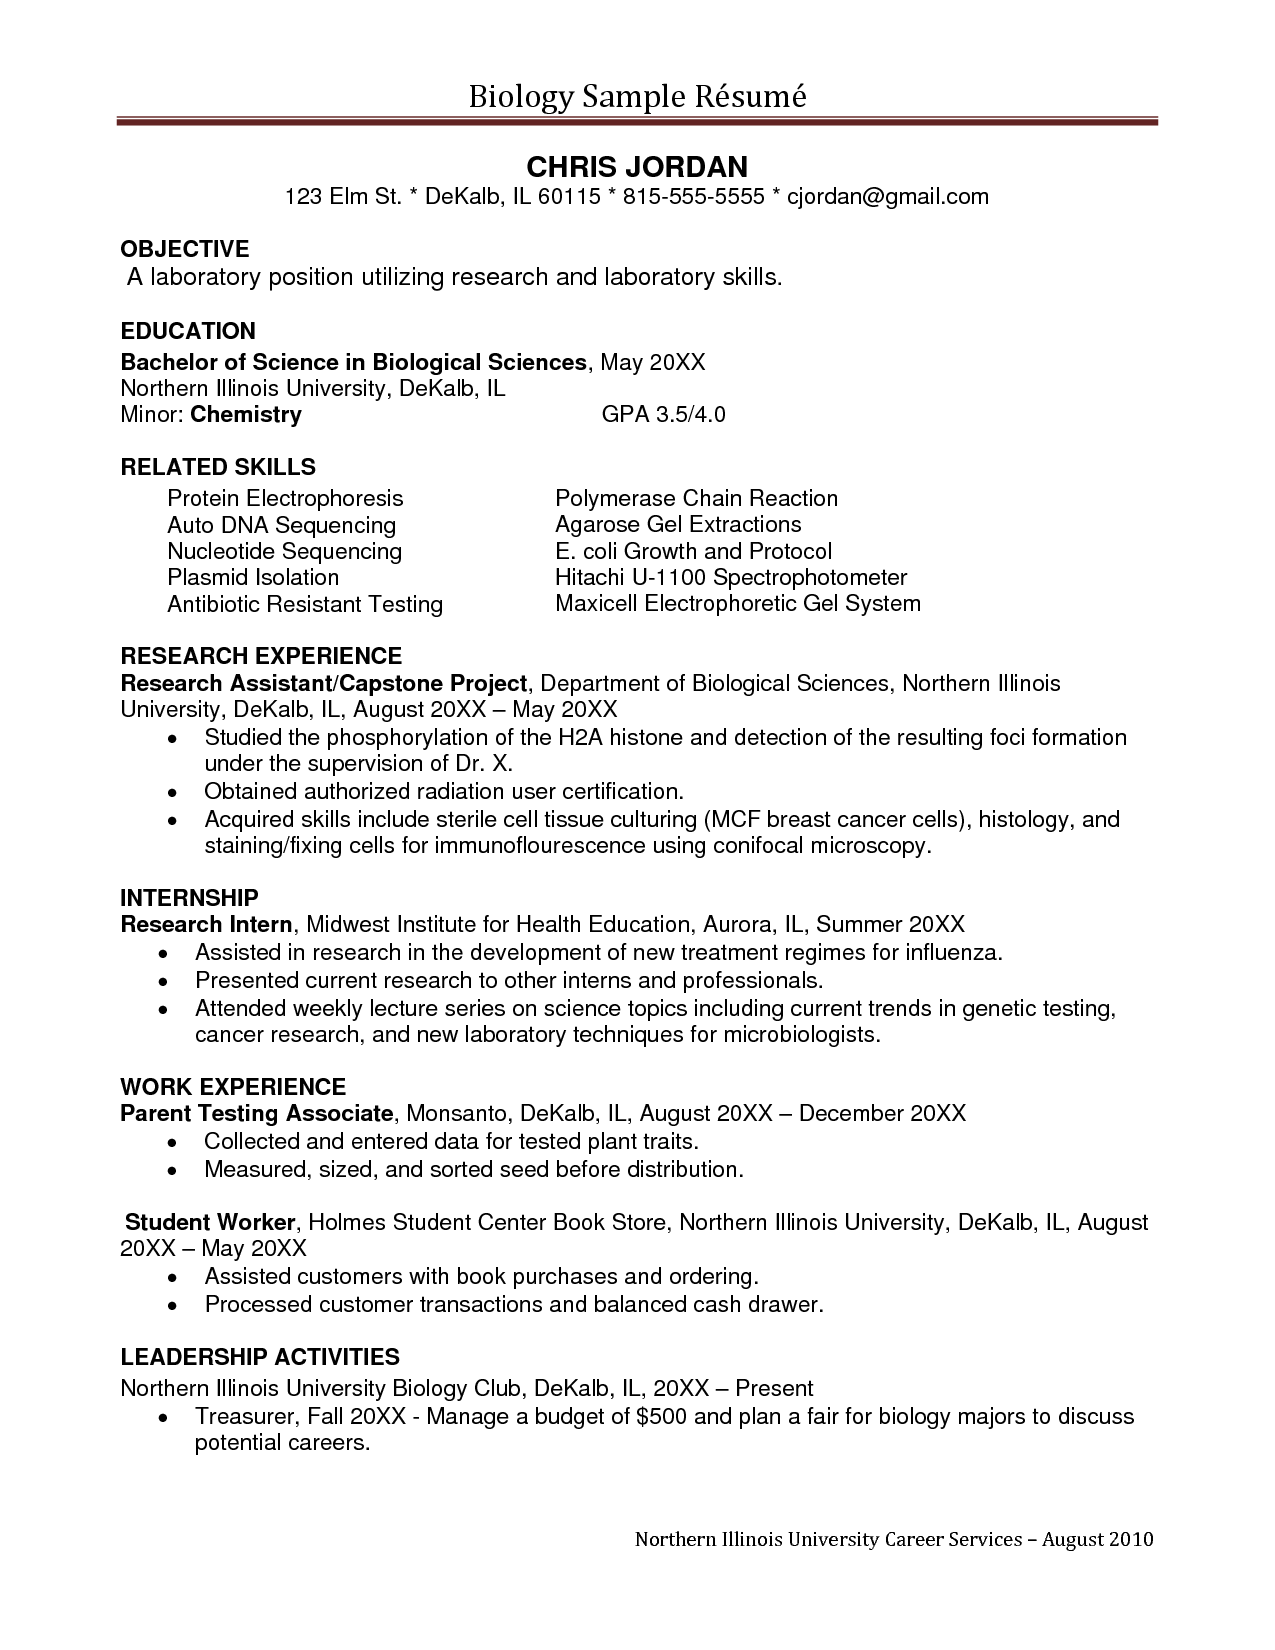 Administrative Assistant Job Description Resume Sample Undergraduate Research Assistant Resume Sampleĺ